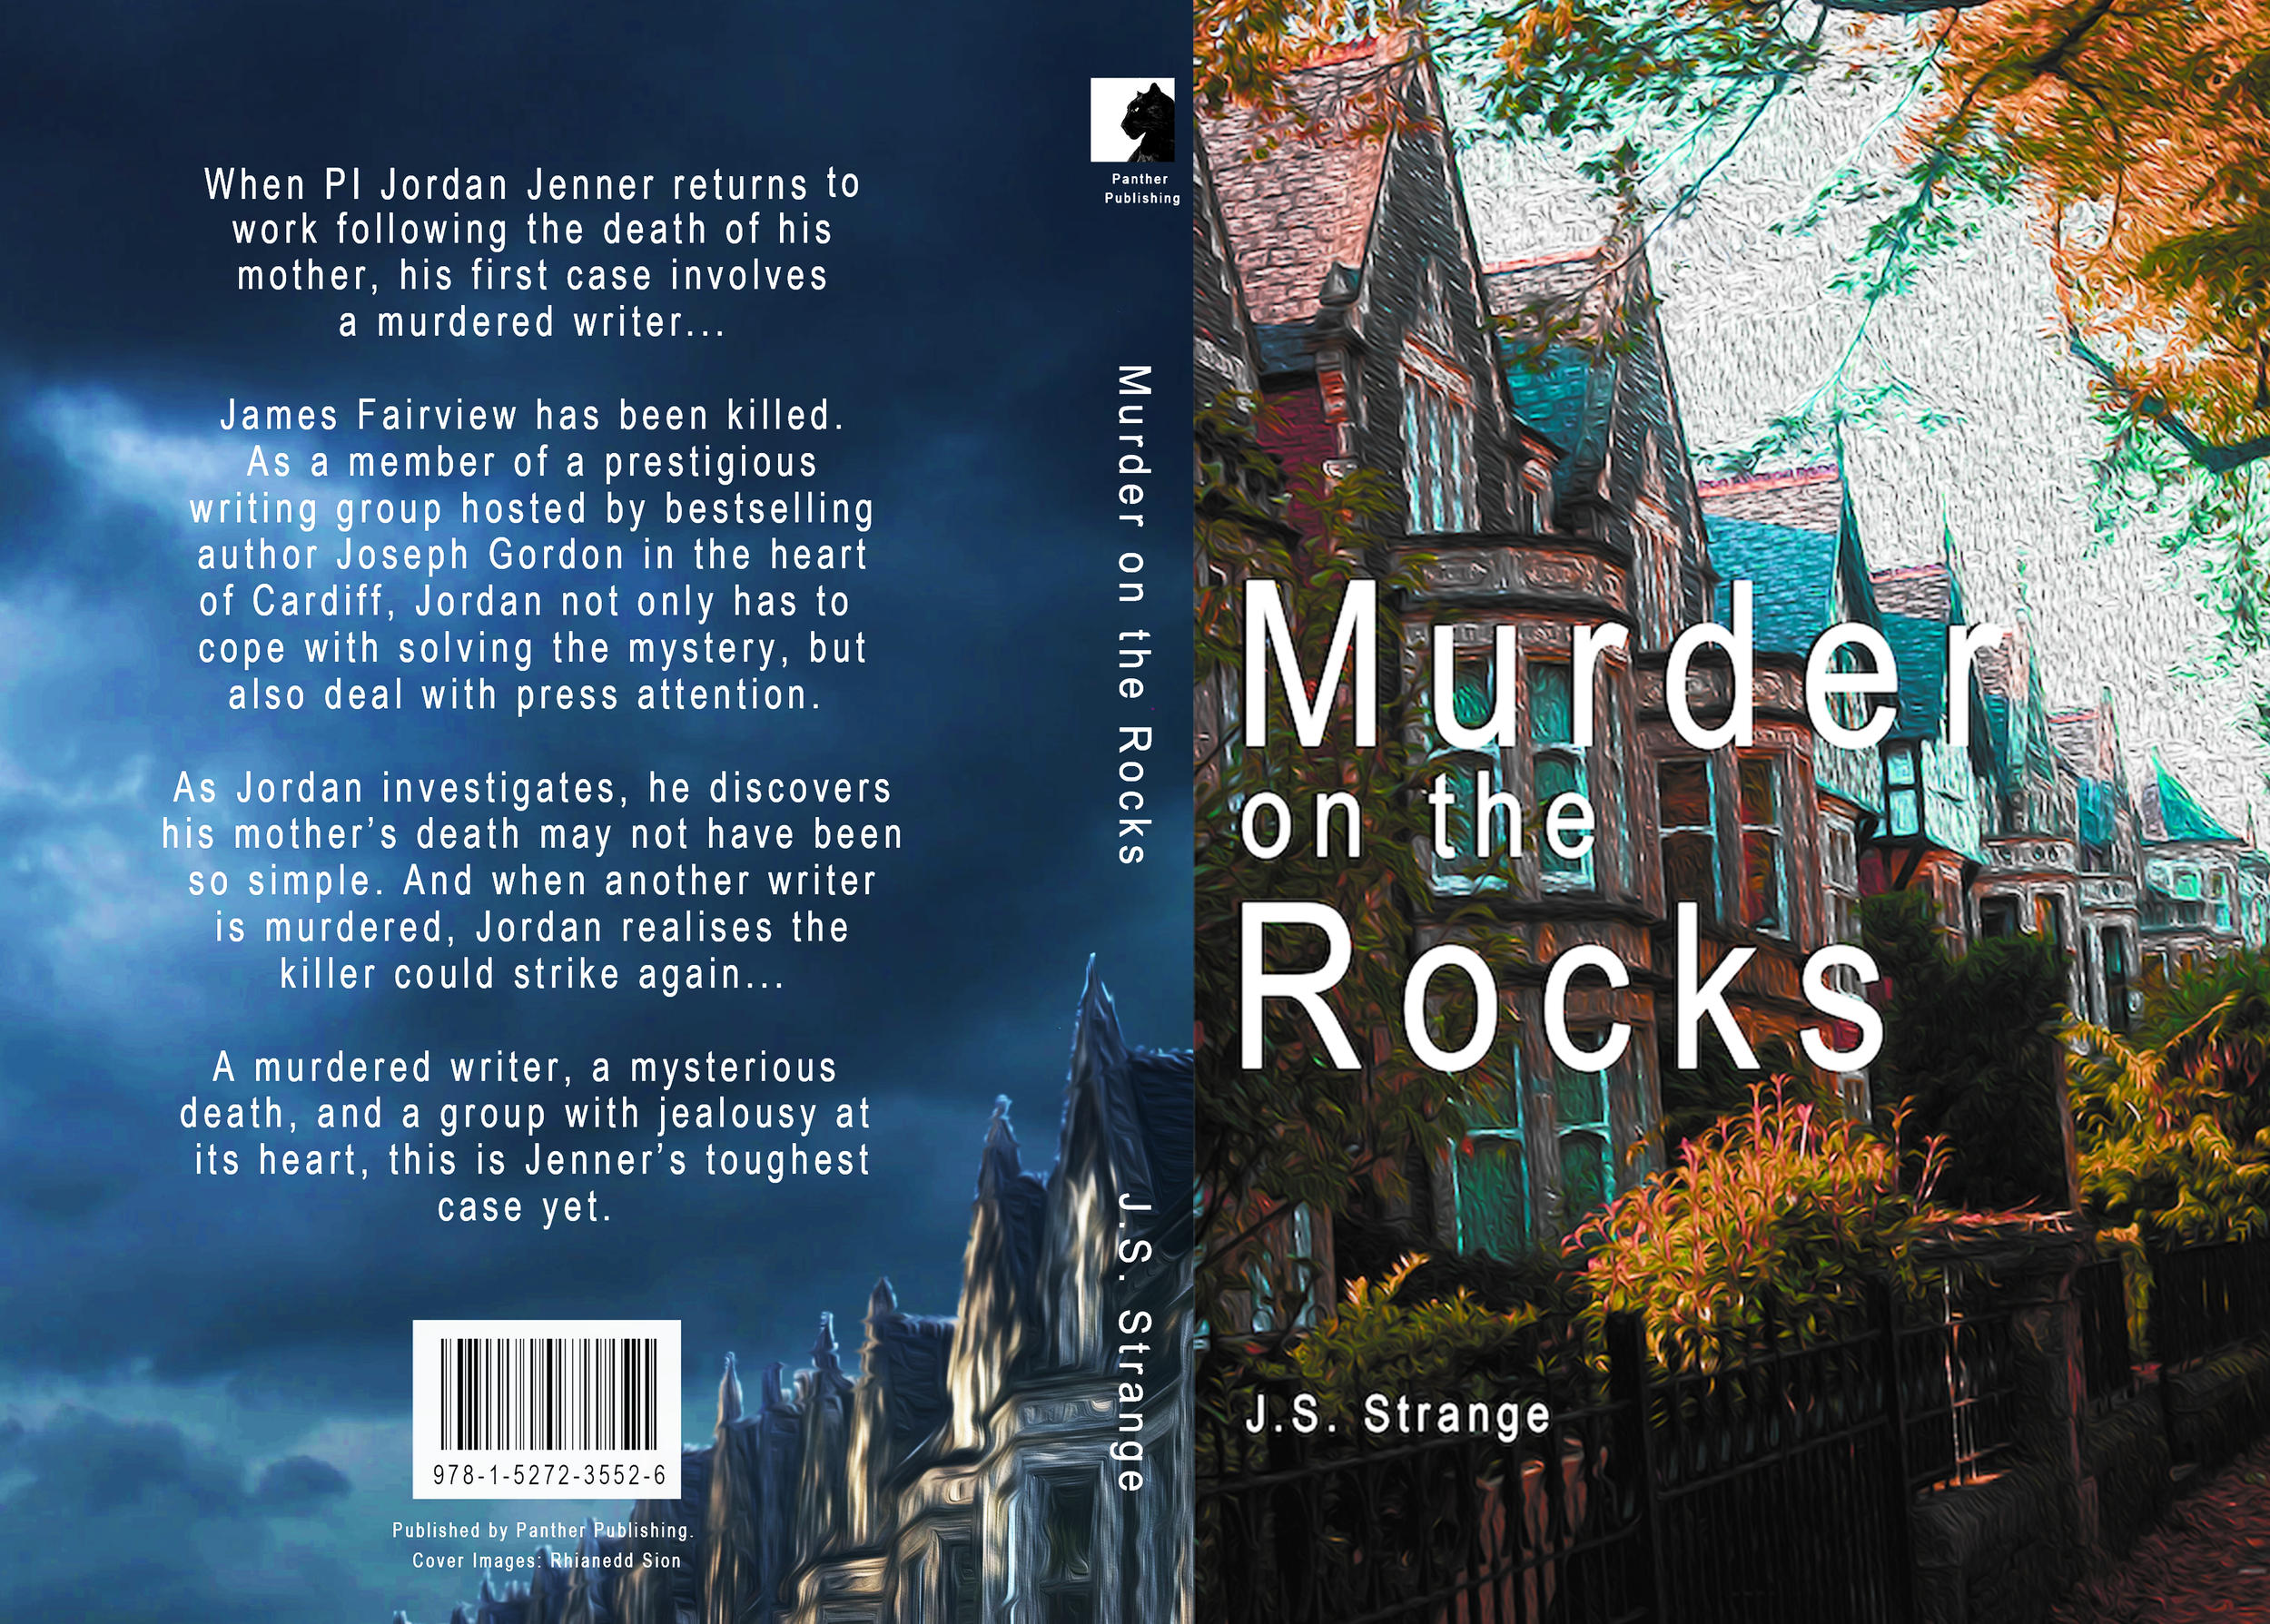 Murder on the Rocks Photoshop PDF.png